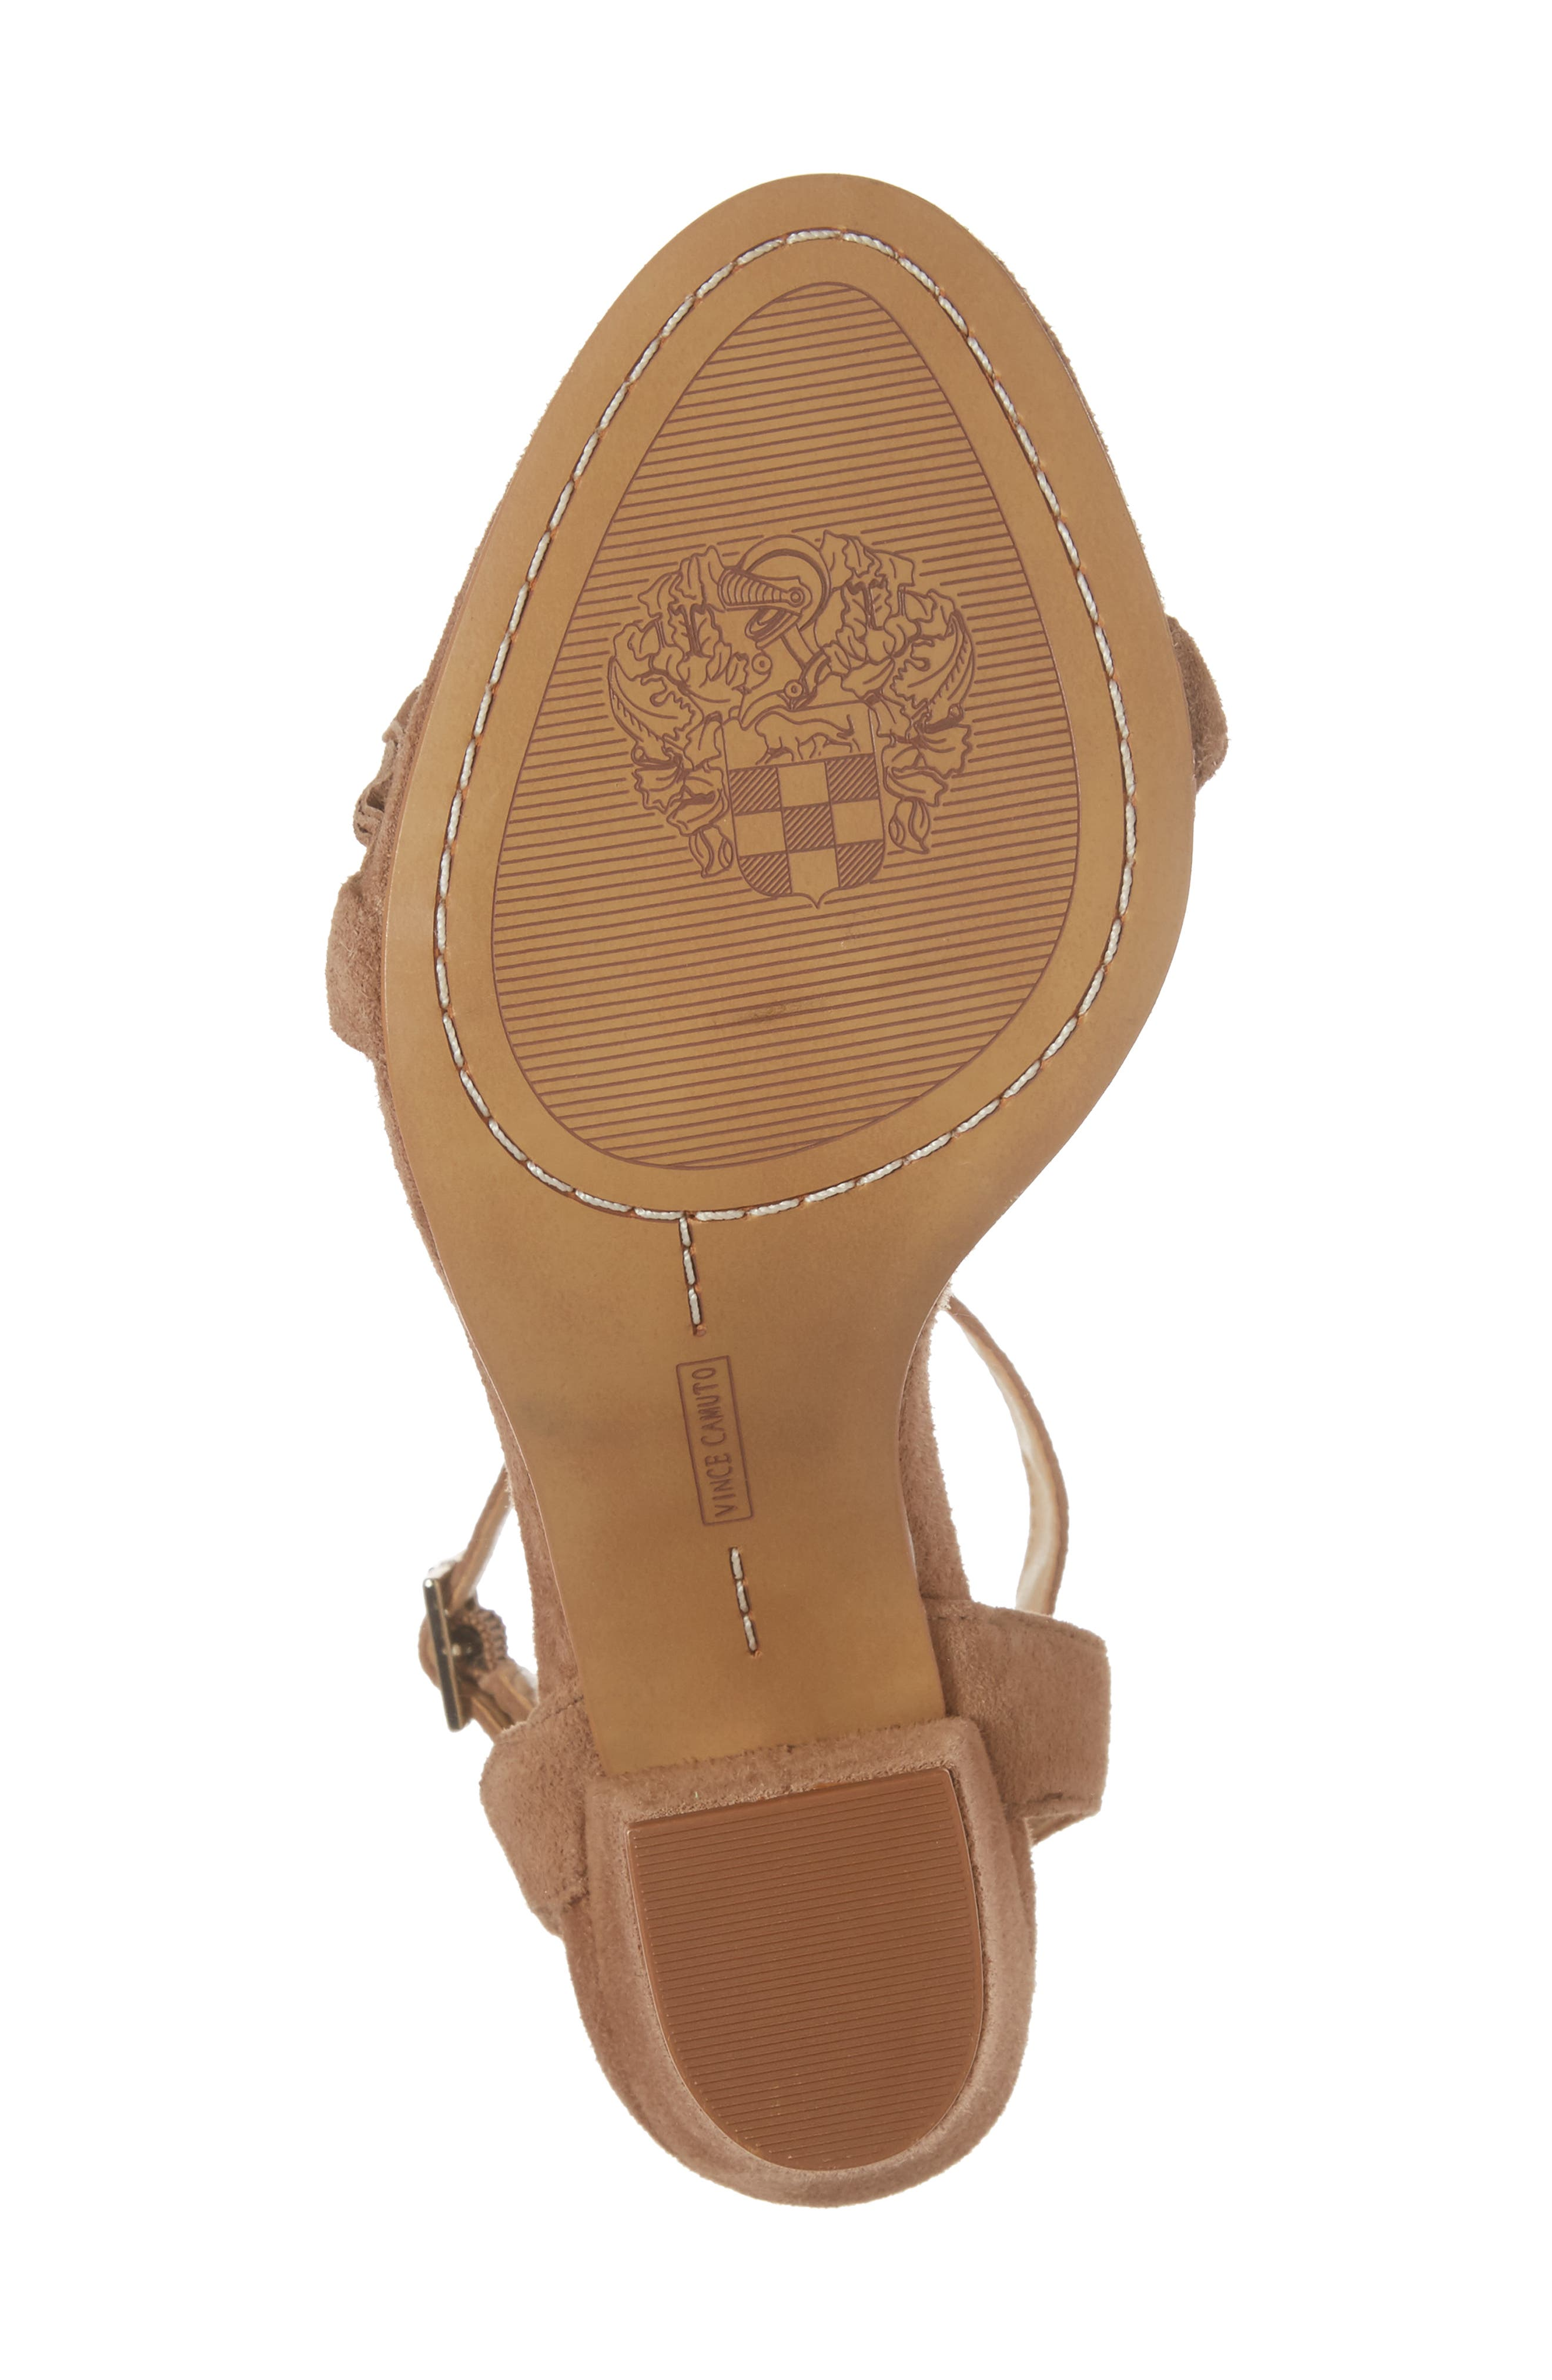 Vinta Sandal,                             Alternate thumbnail 7, color,                             Amendoa Suede